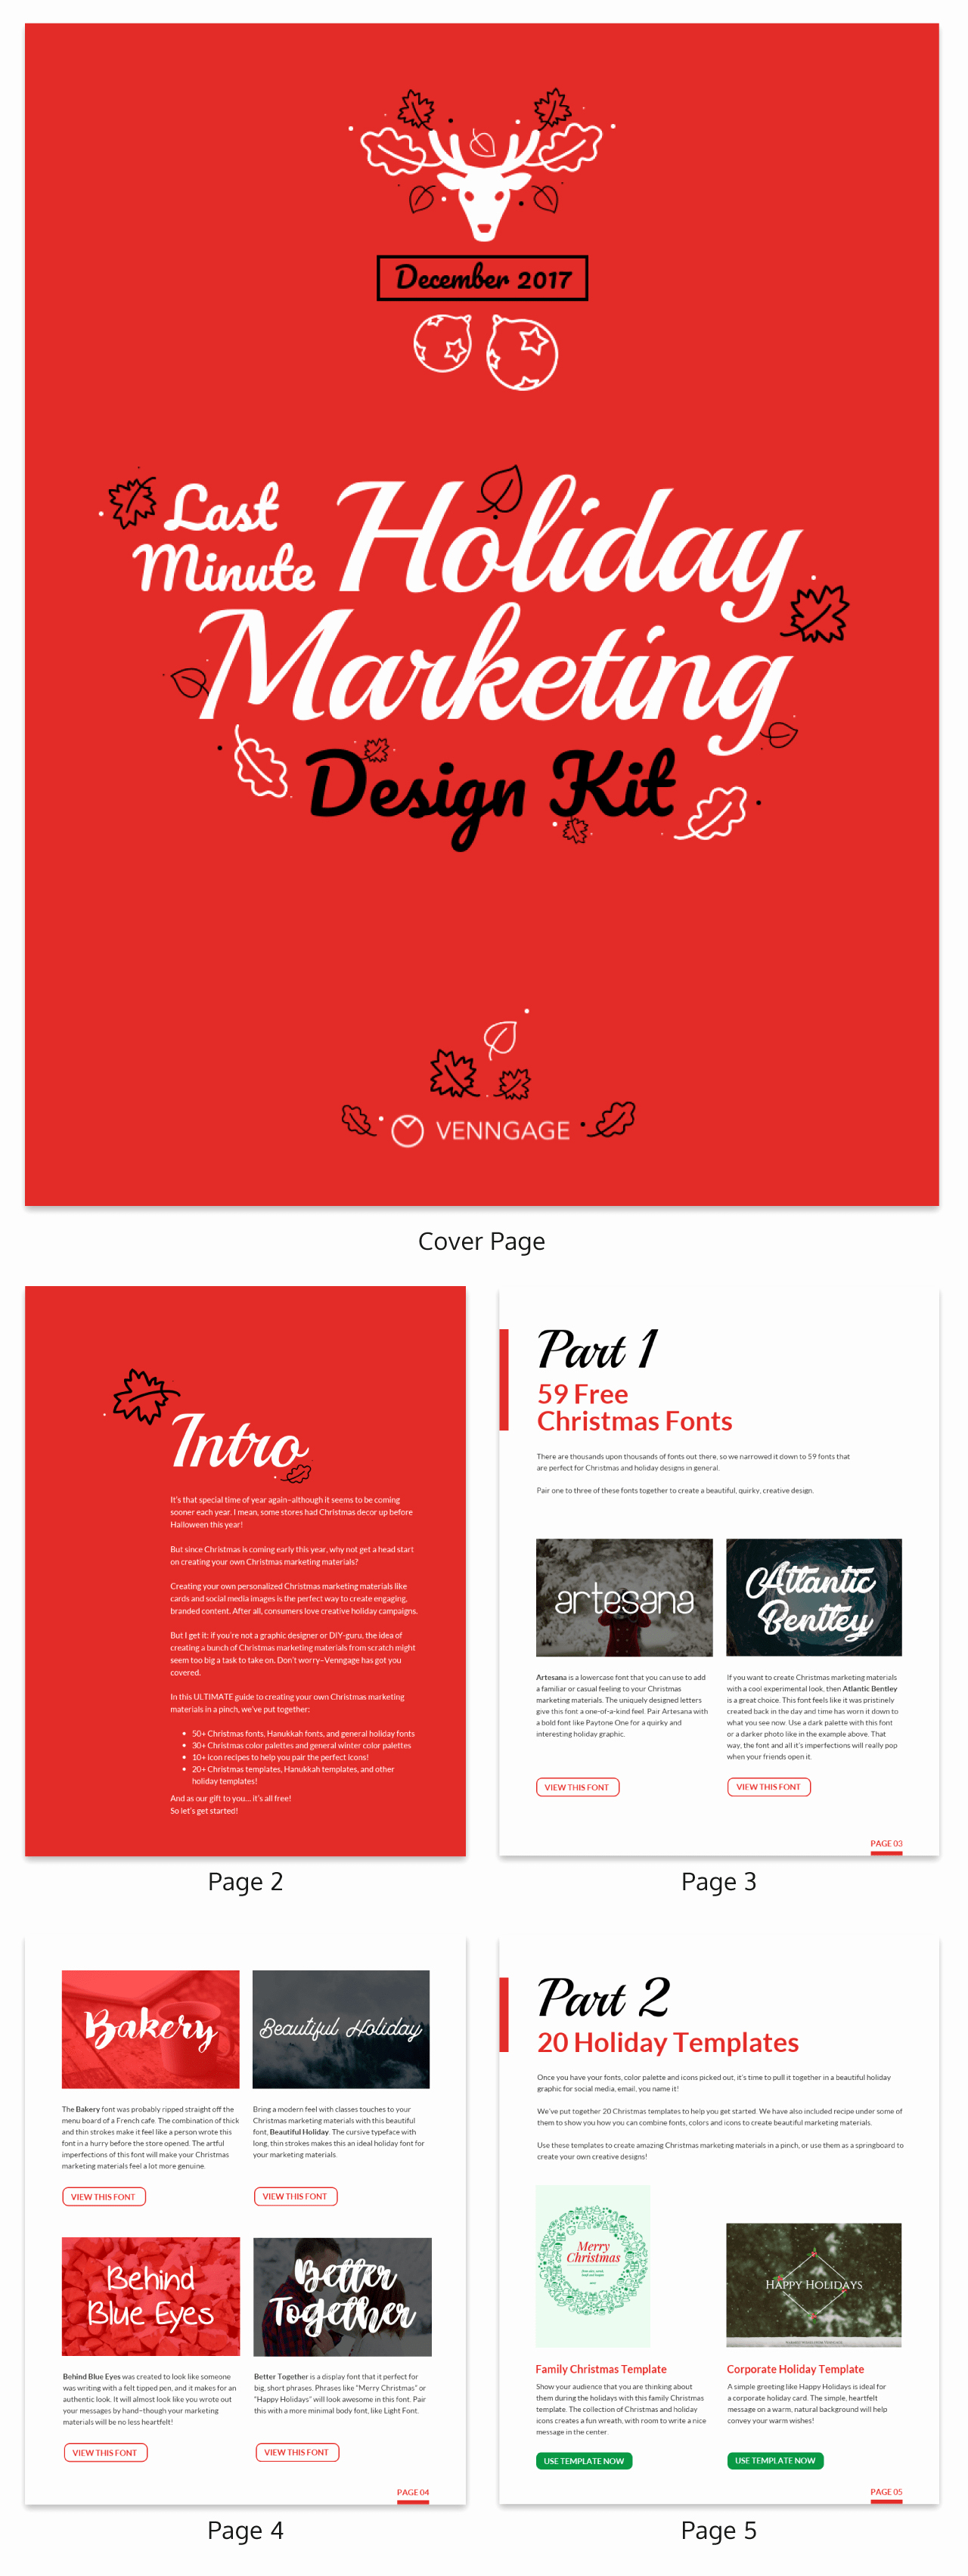 White Paper Examples Beautiful 20 Page Turning White Paper Examples [design Guide Tips